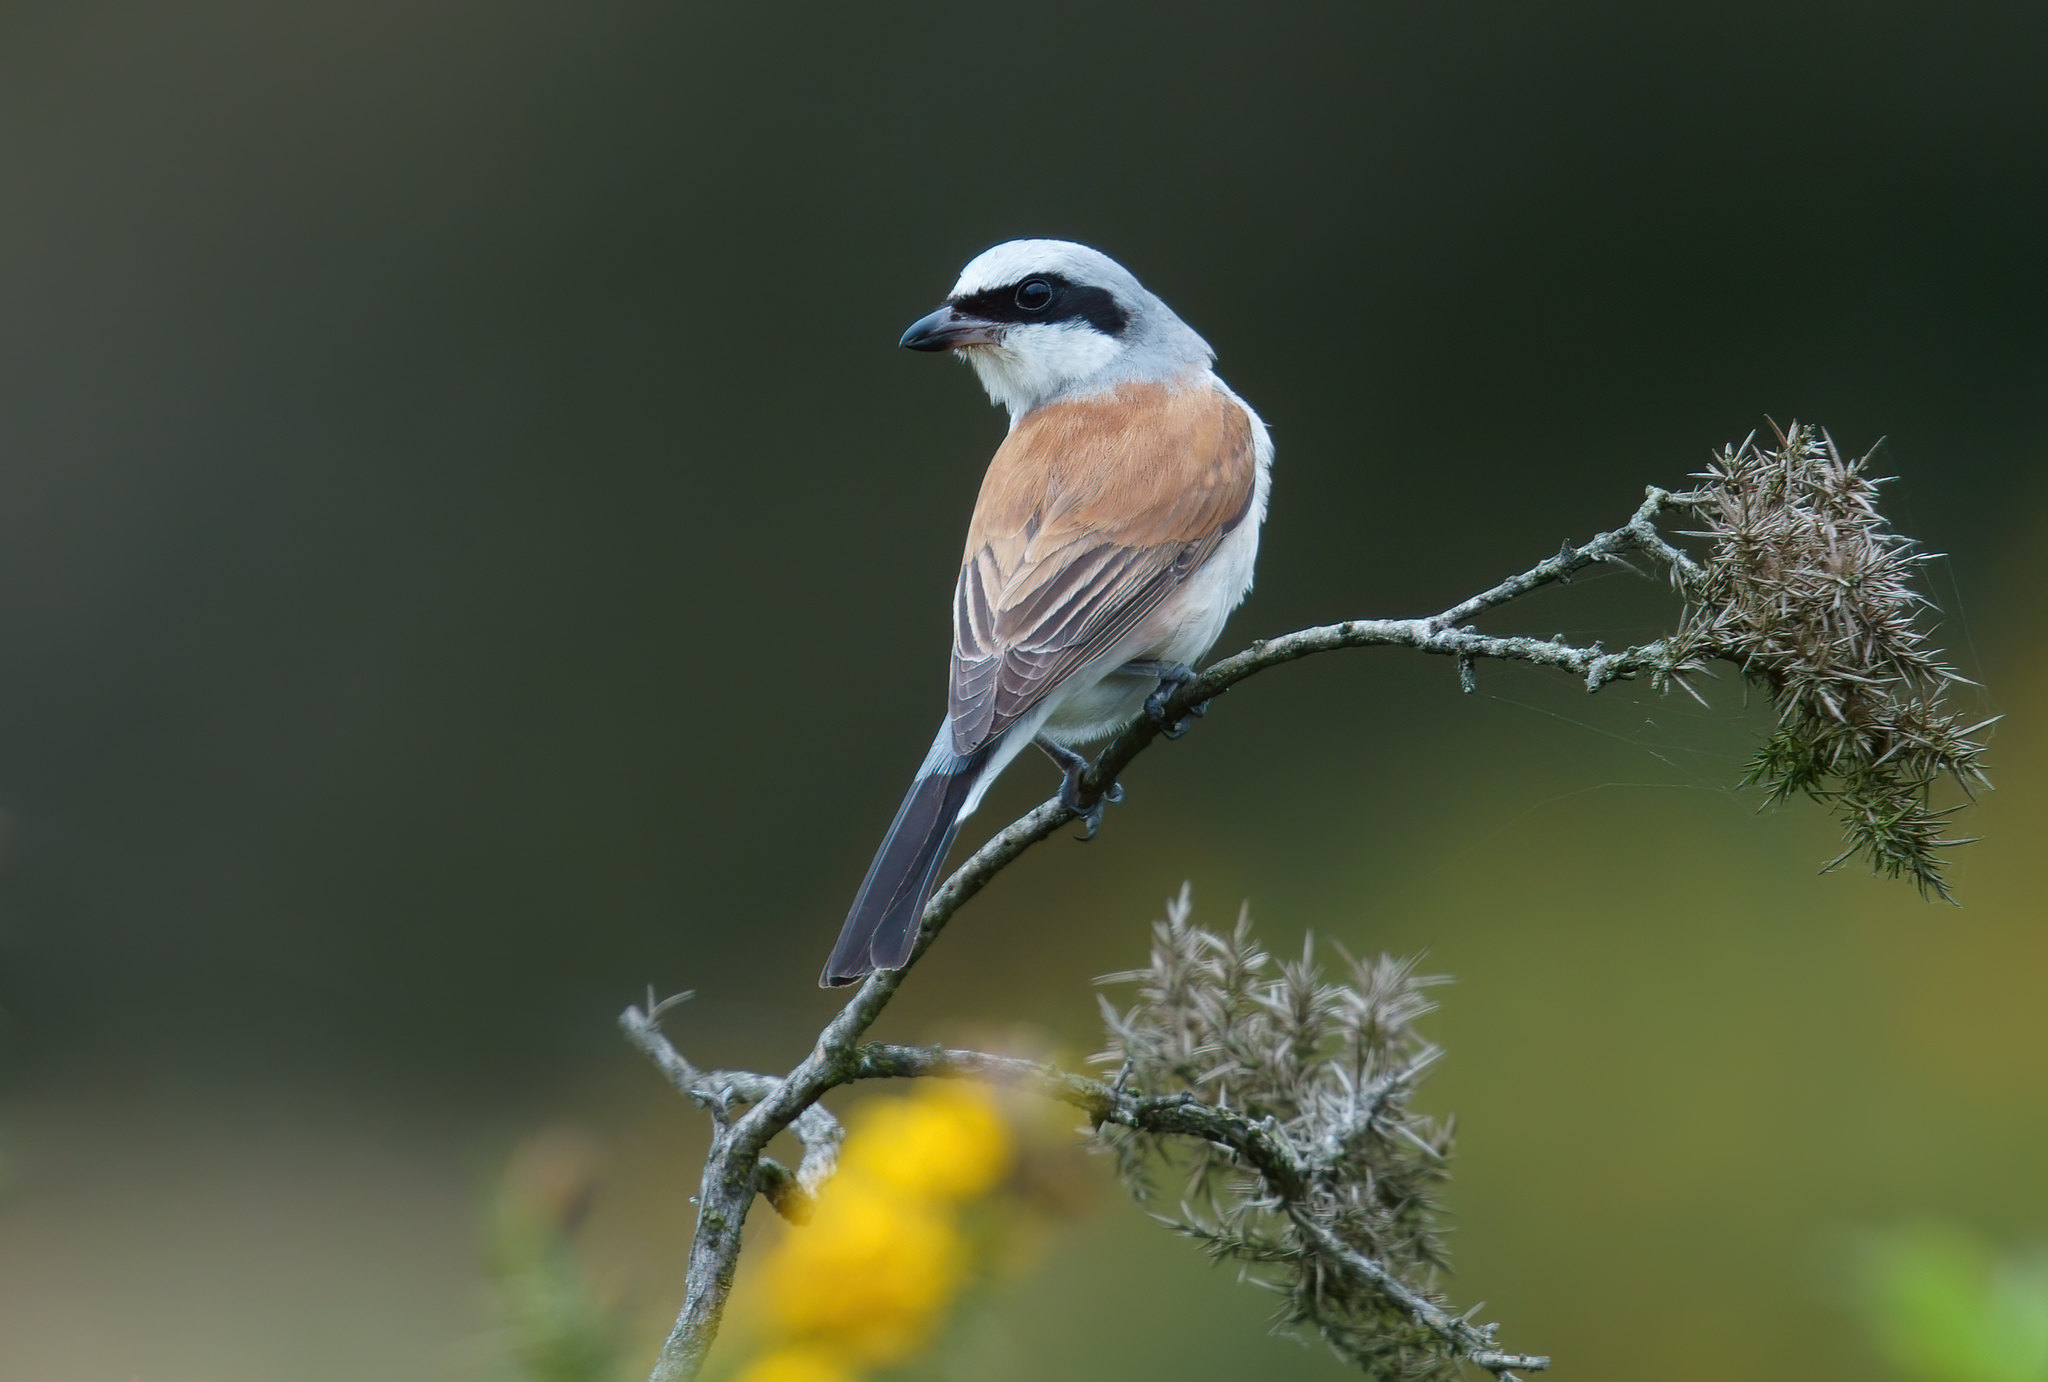 Male Red-backed Shrike